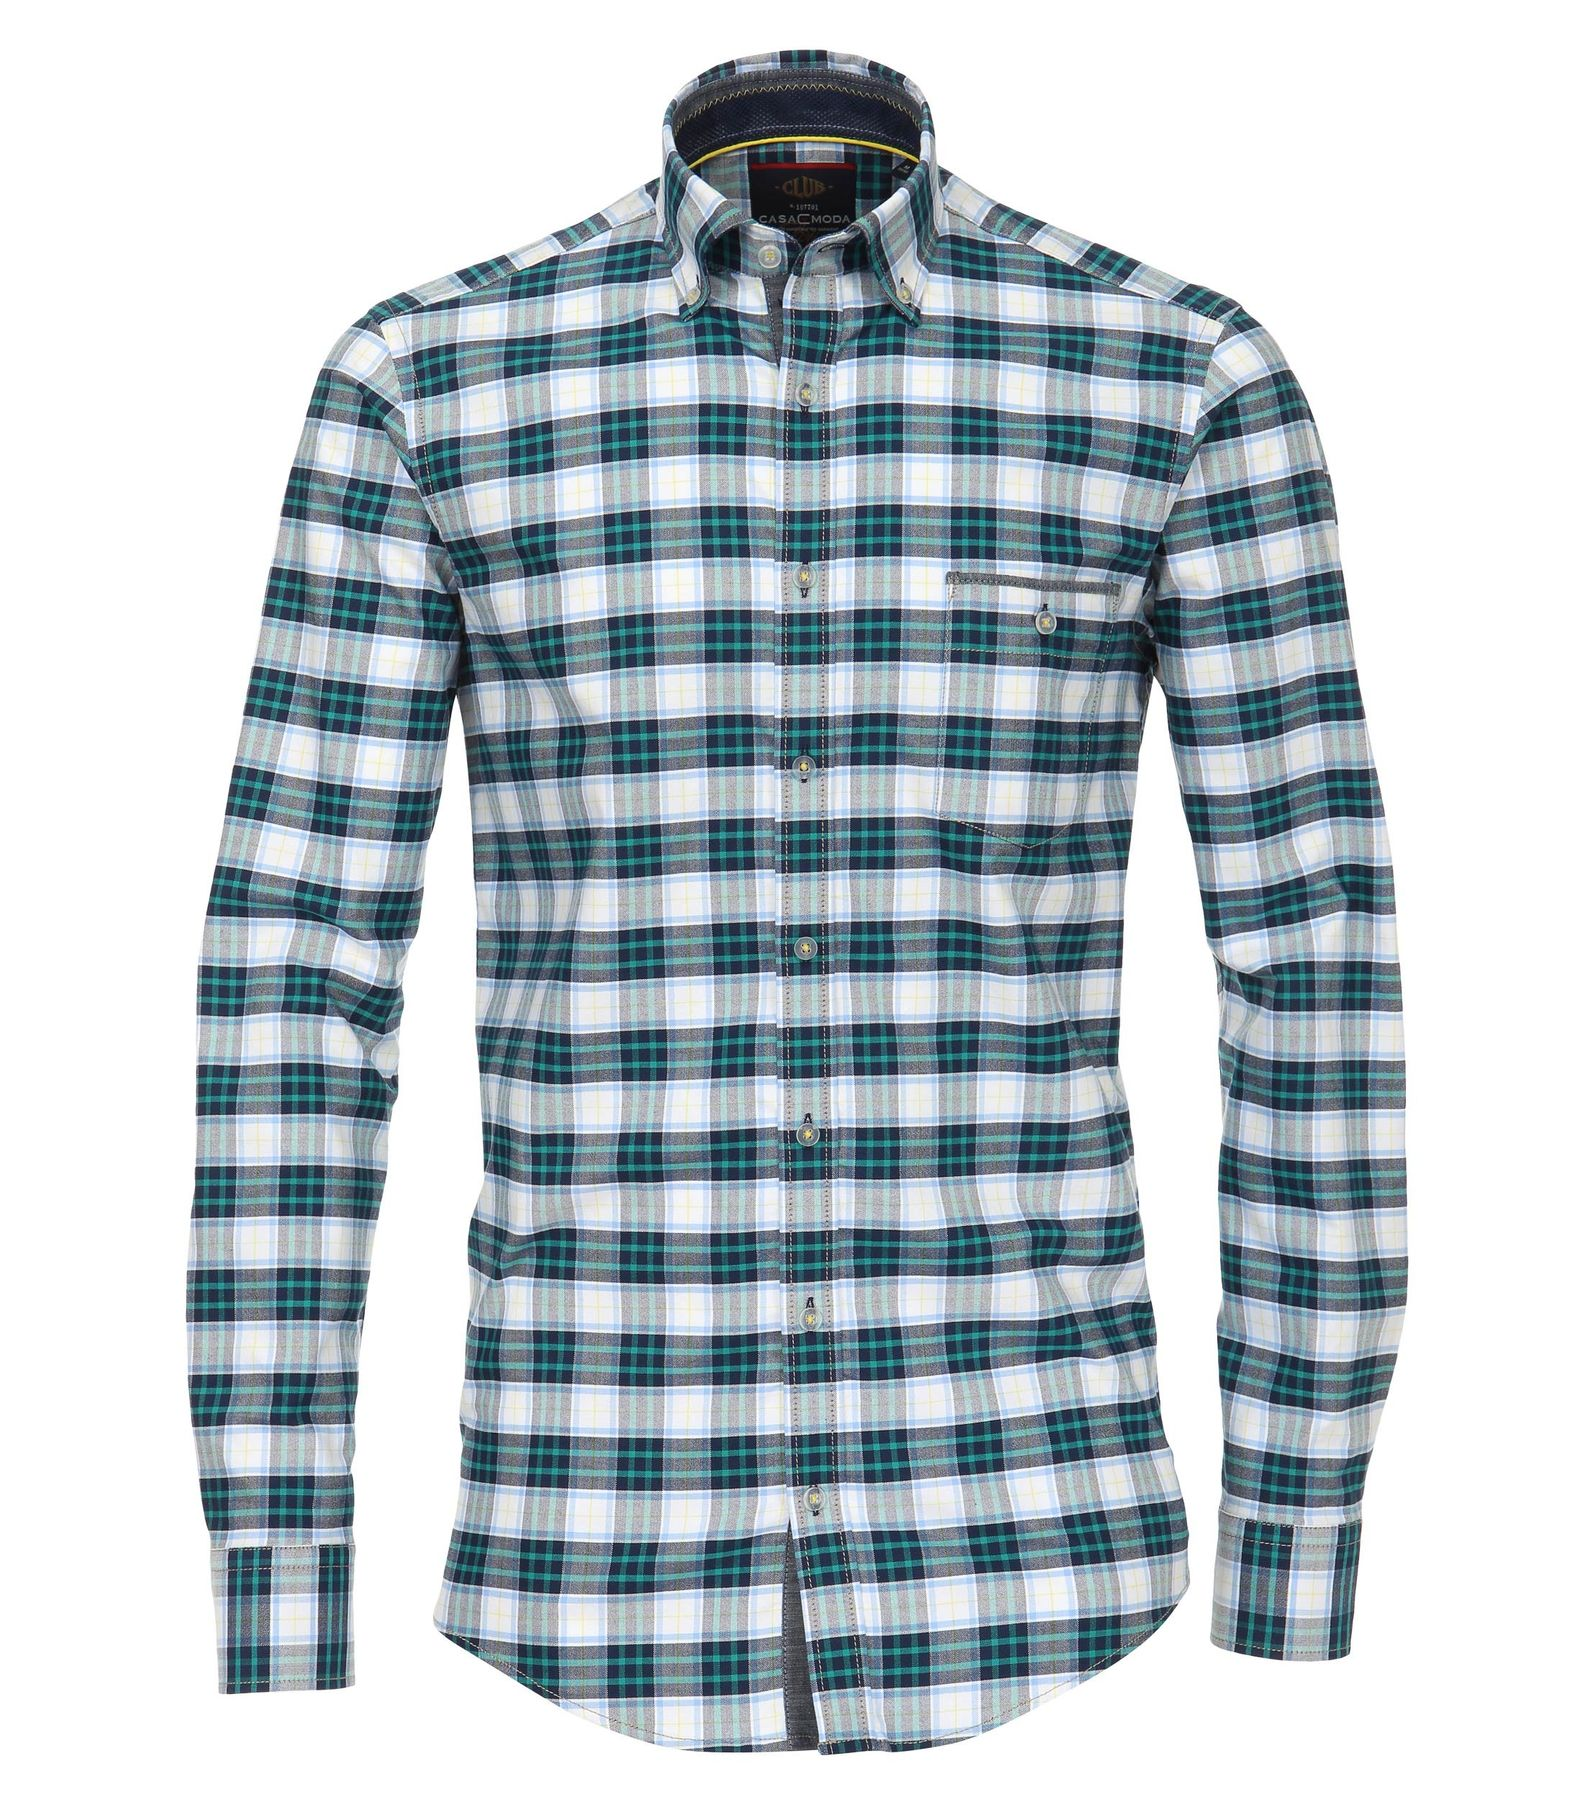 Casa Moda - Casual Fit - Oxford Herren Hemd kariert mit Button Down-Kragen in blau (482897900)